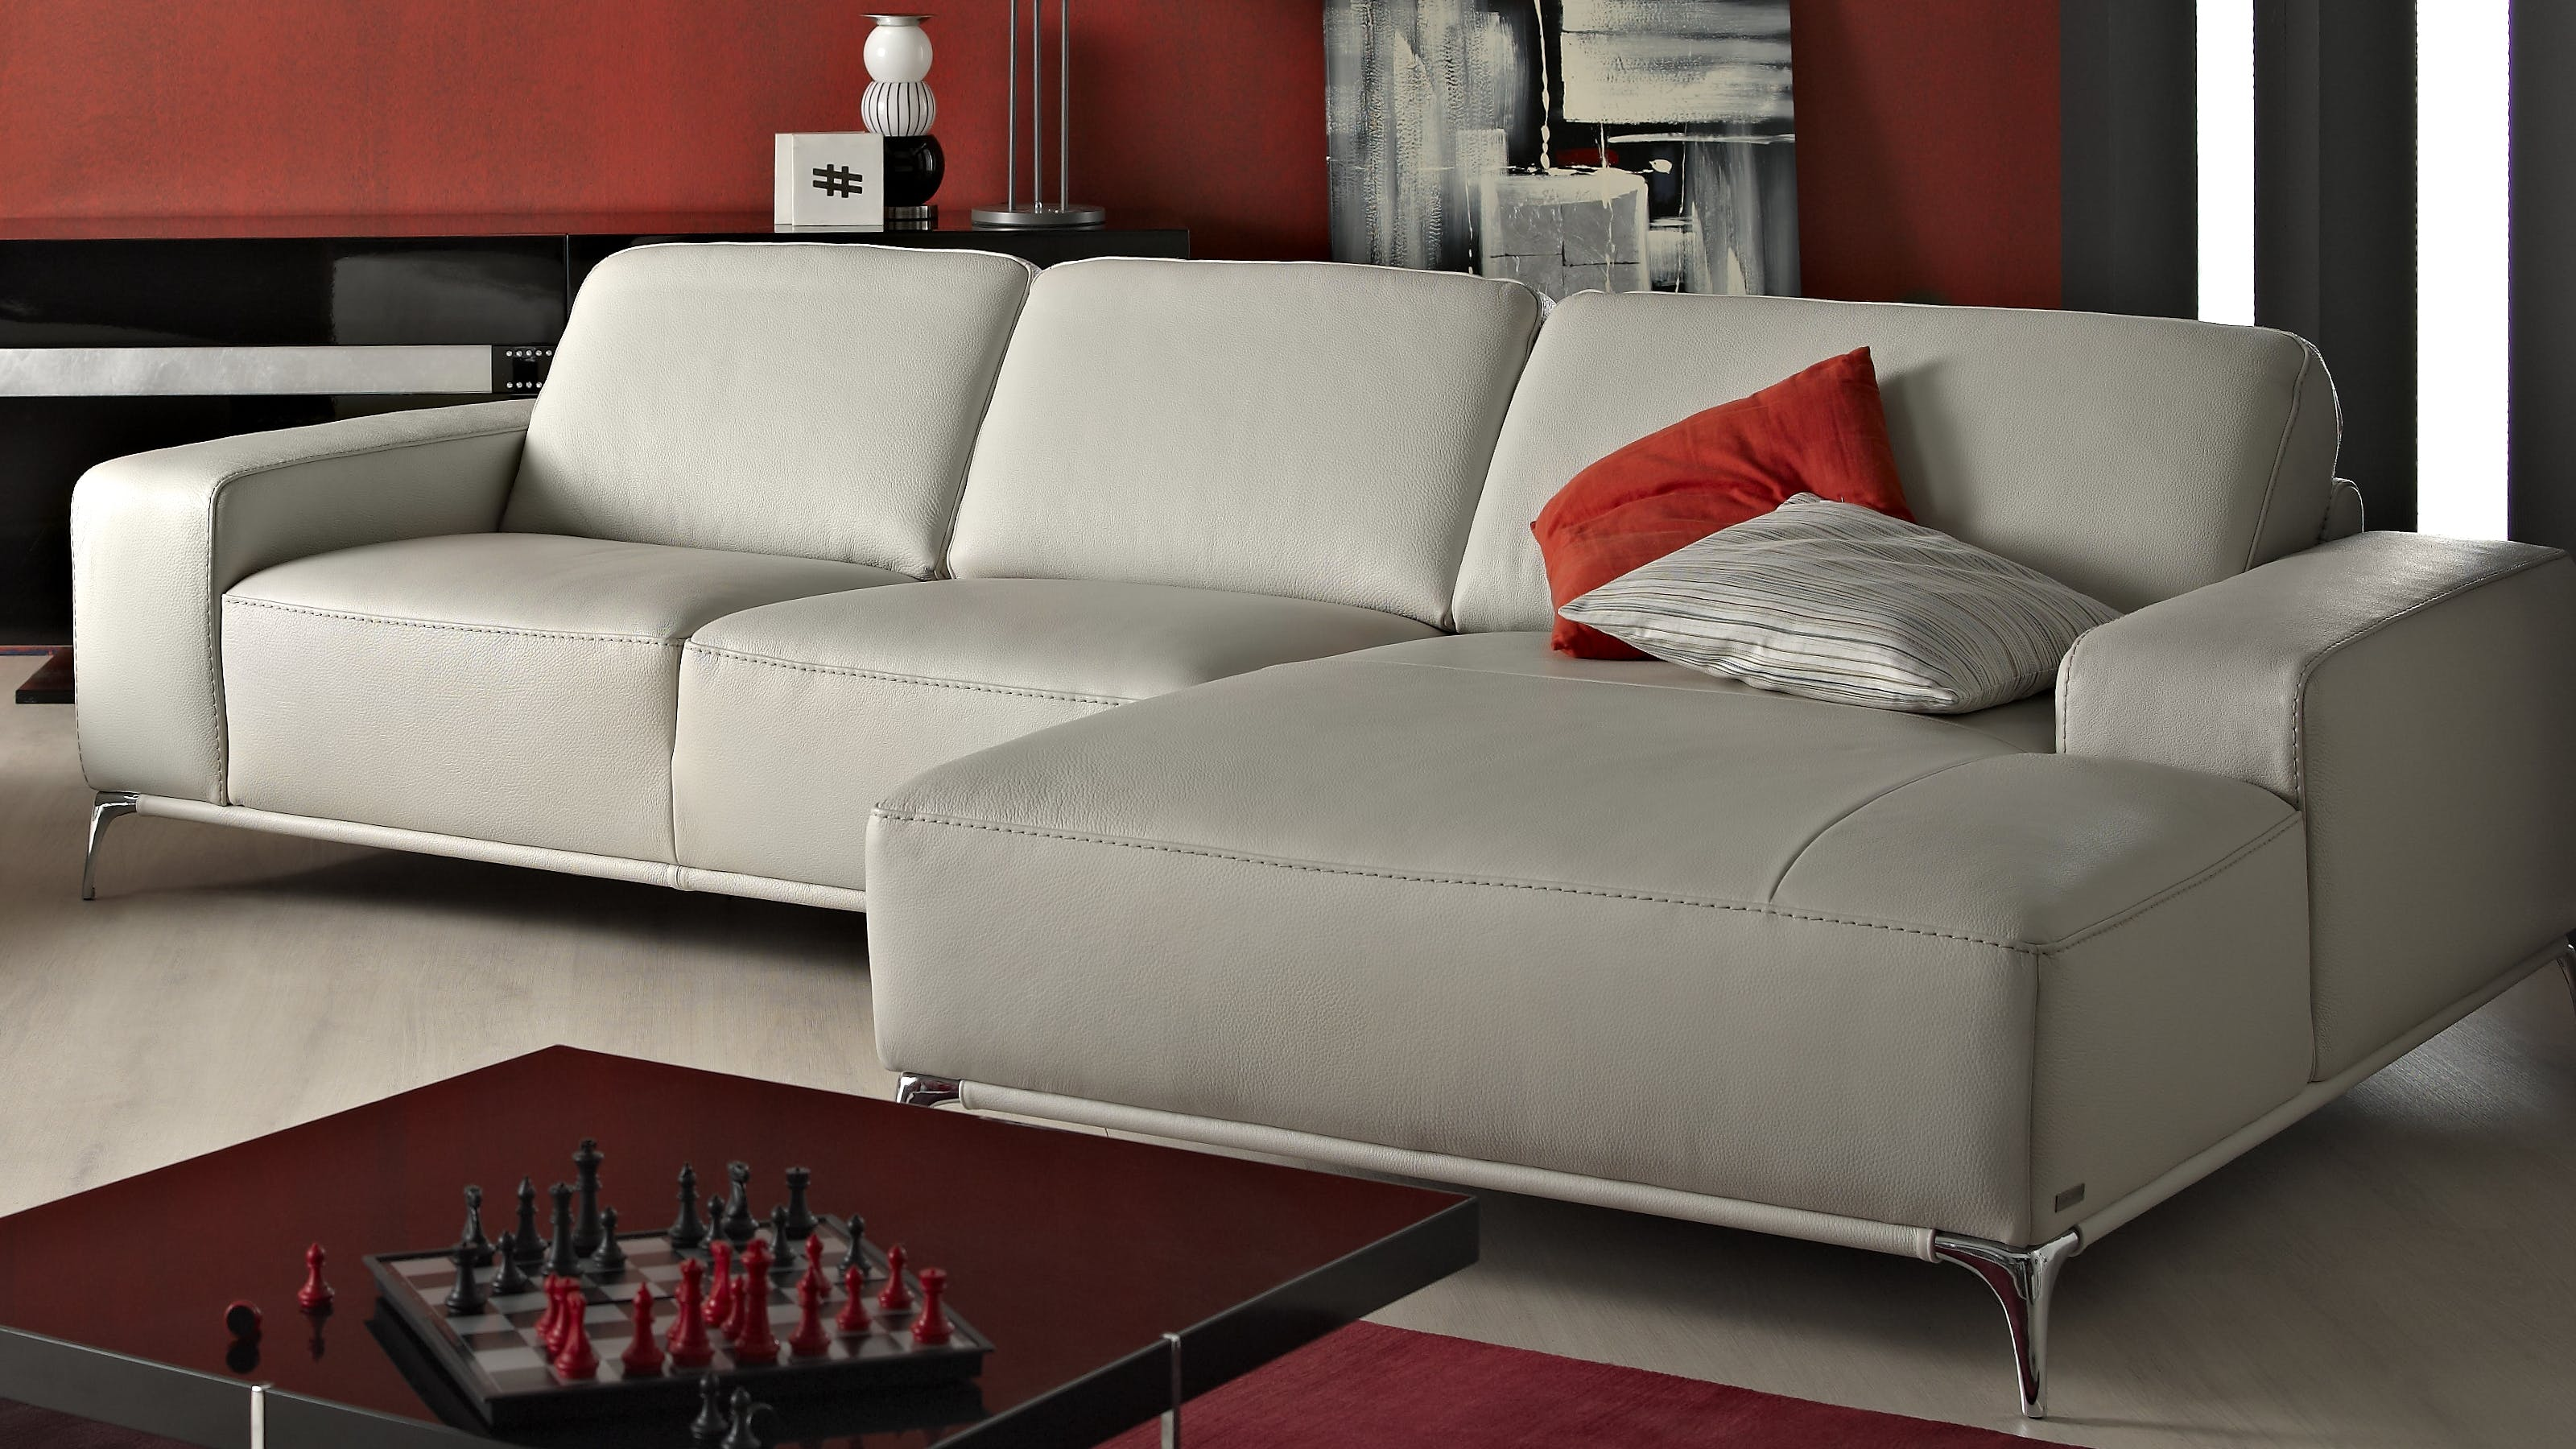 Saporini artemi full leather 2 5 seater sofa with chaise for 5 seater sofa with chaise